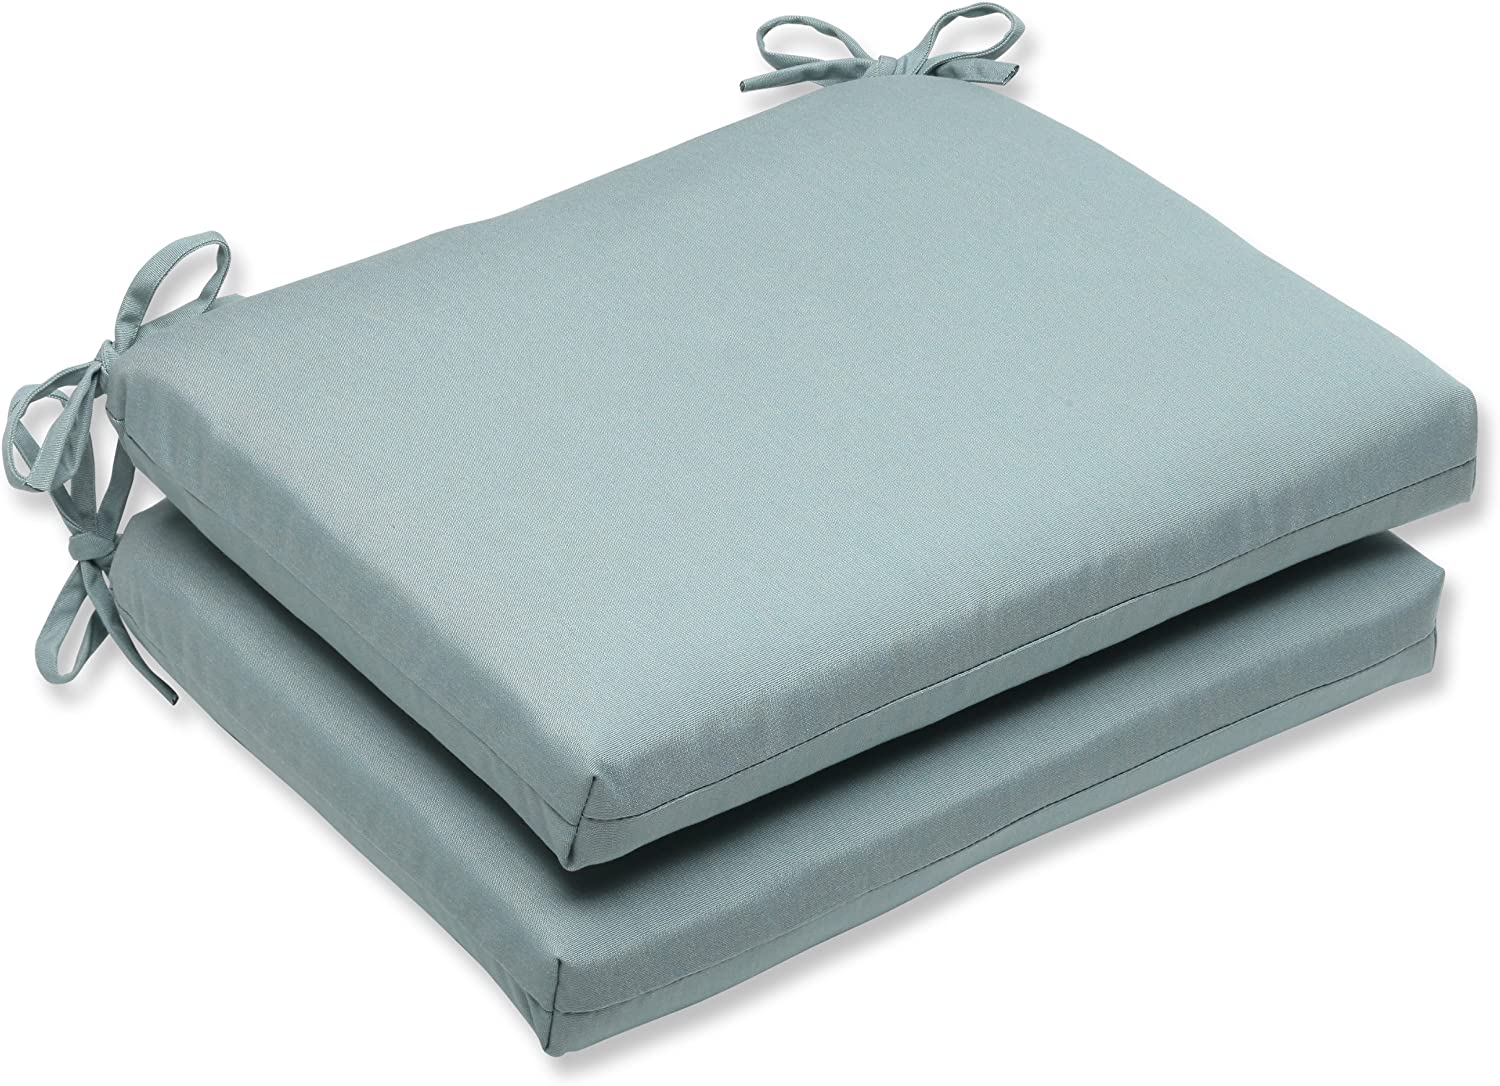 Pillow Perfect Squared Corners Seat Cushion with bluee Sunbrella Fabric, Set of 2